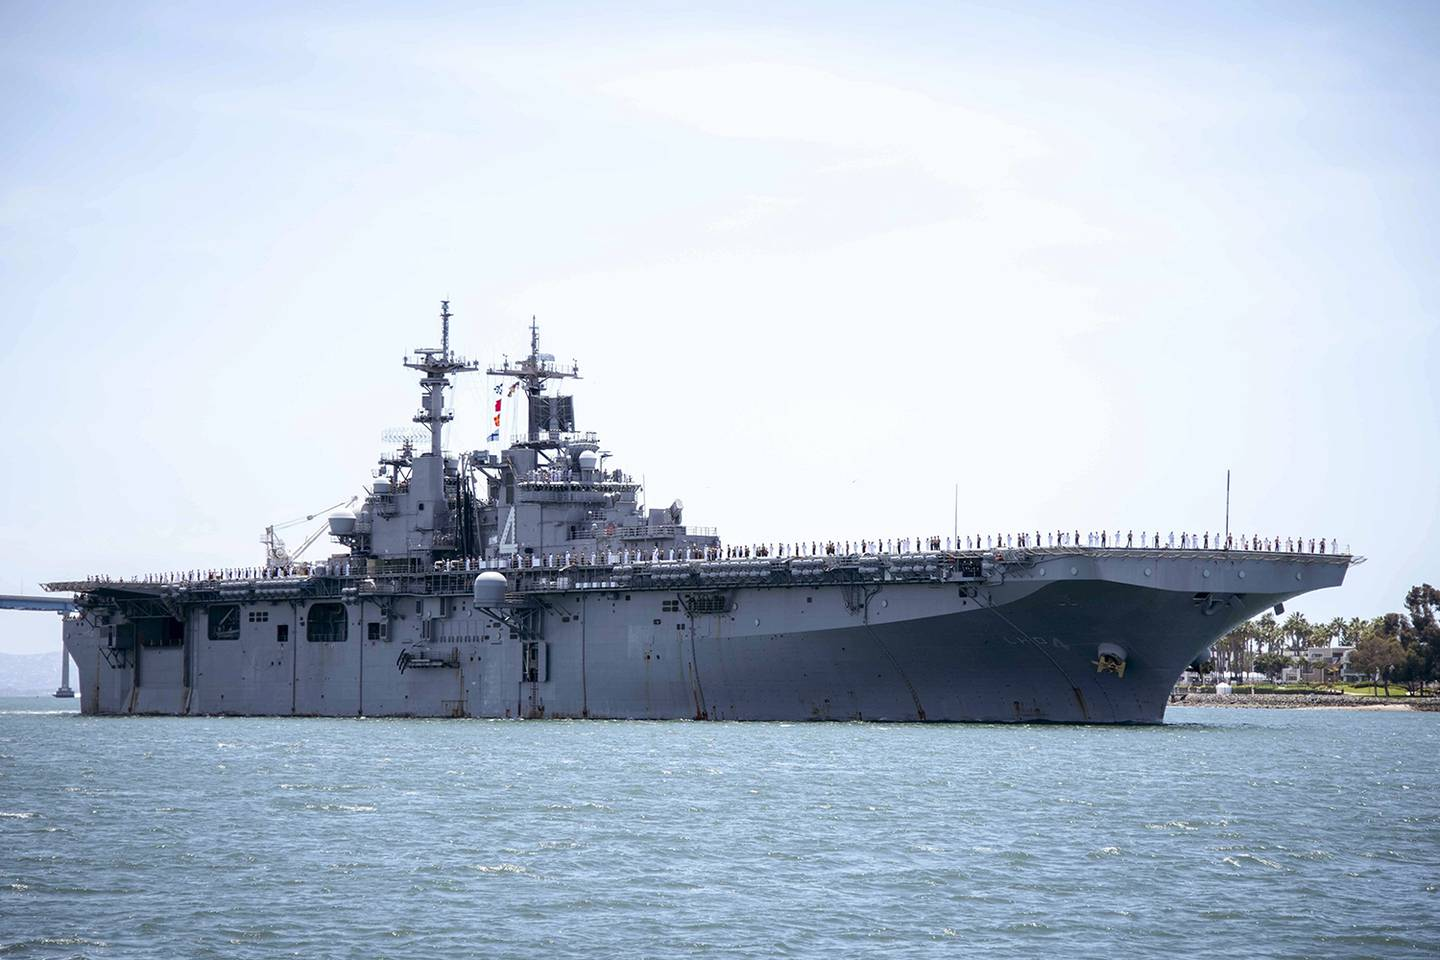 In this May 1, 2019, photo provided by the U.S. Navy, the amphibious assault ship USS Boxer (LHD 4) transits the San Diego Bay in San Diego, Calif.